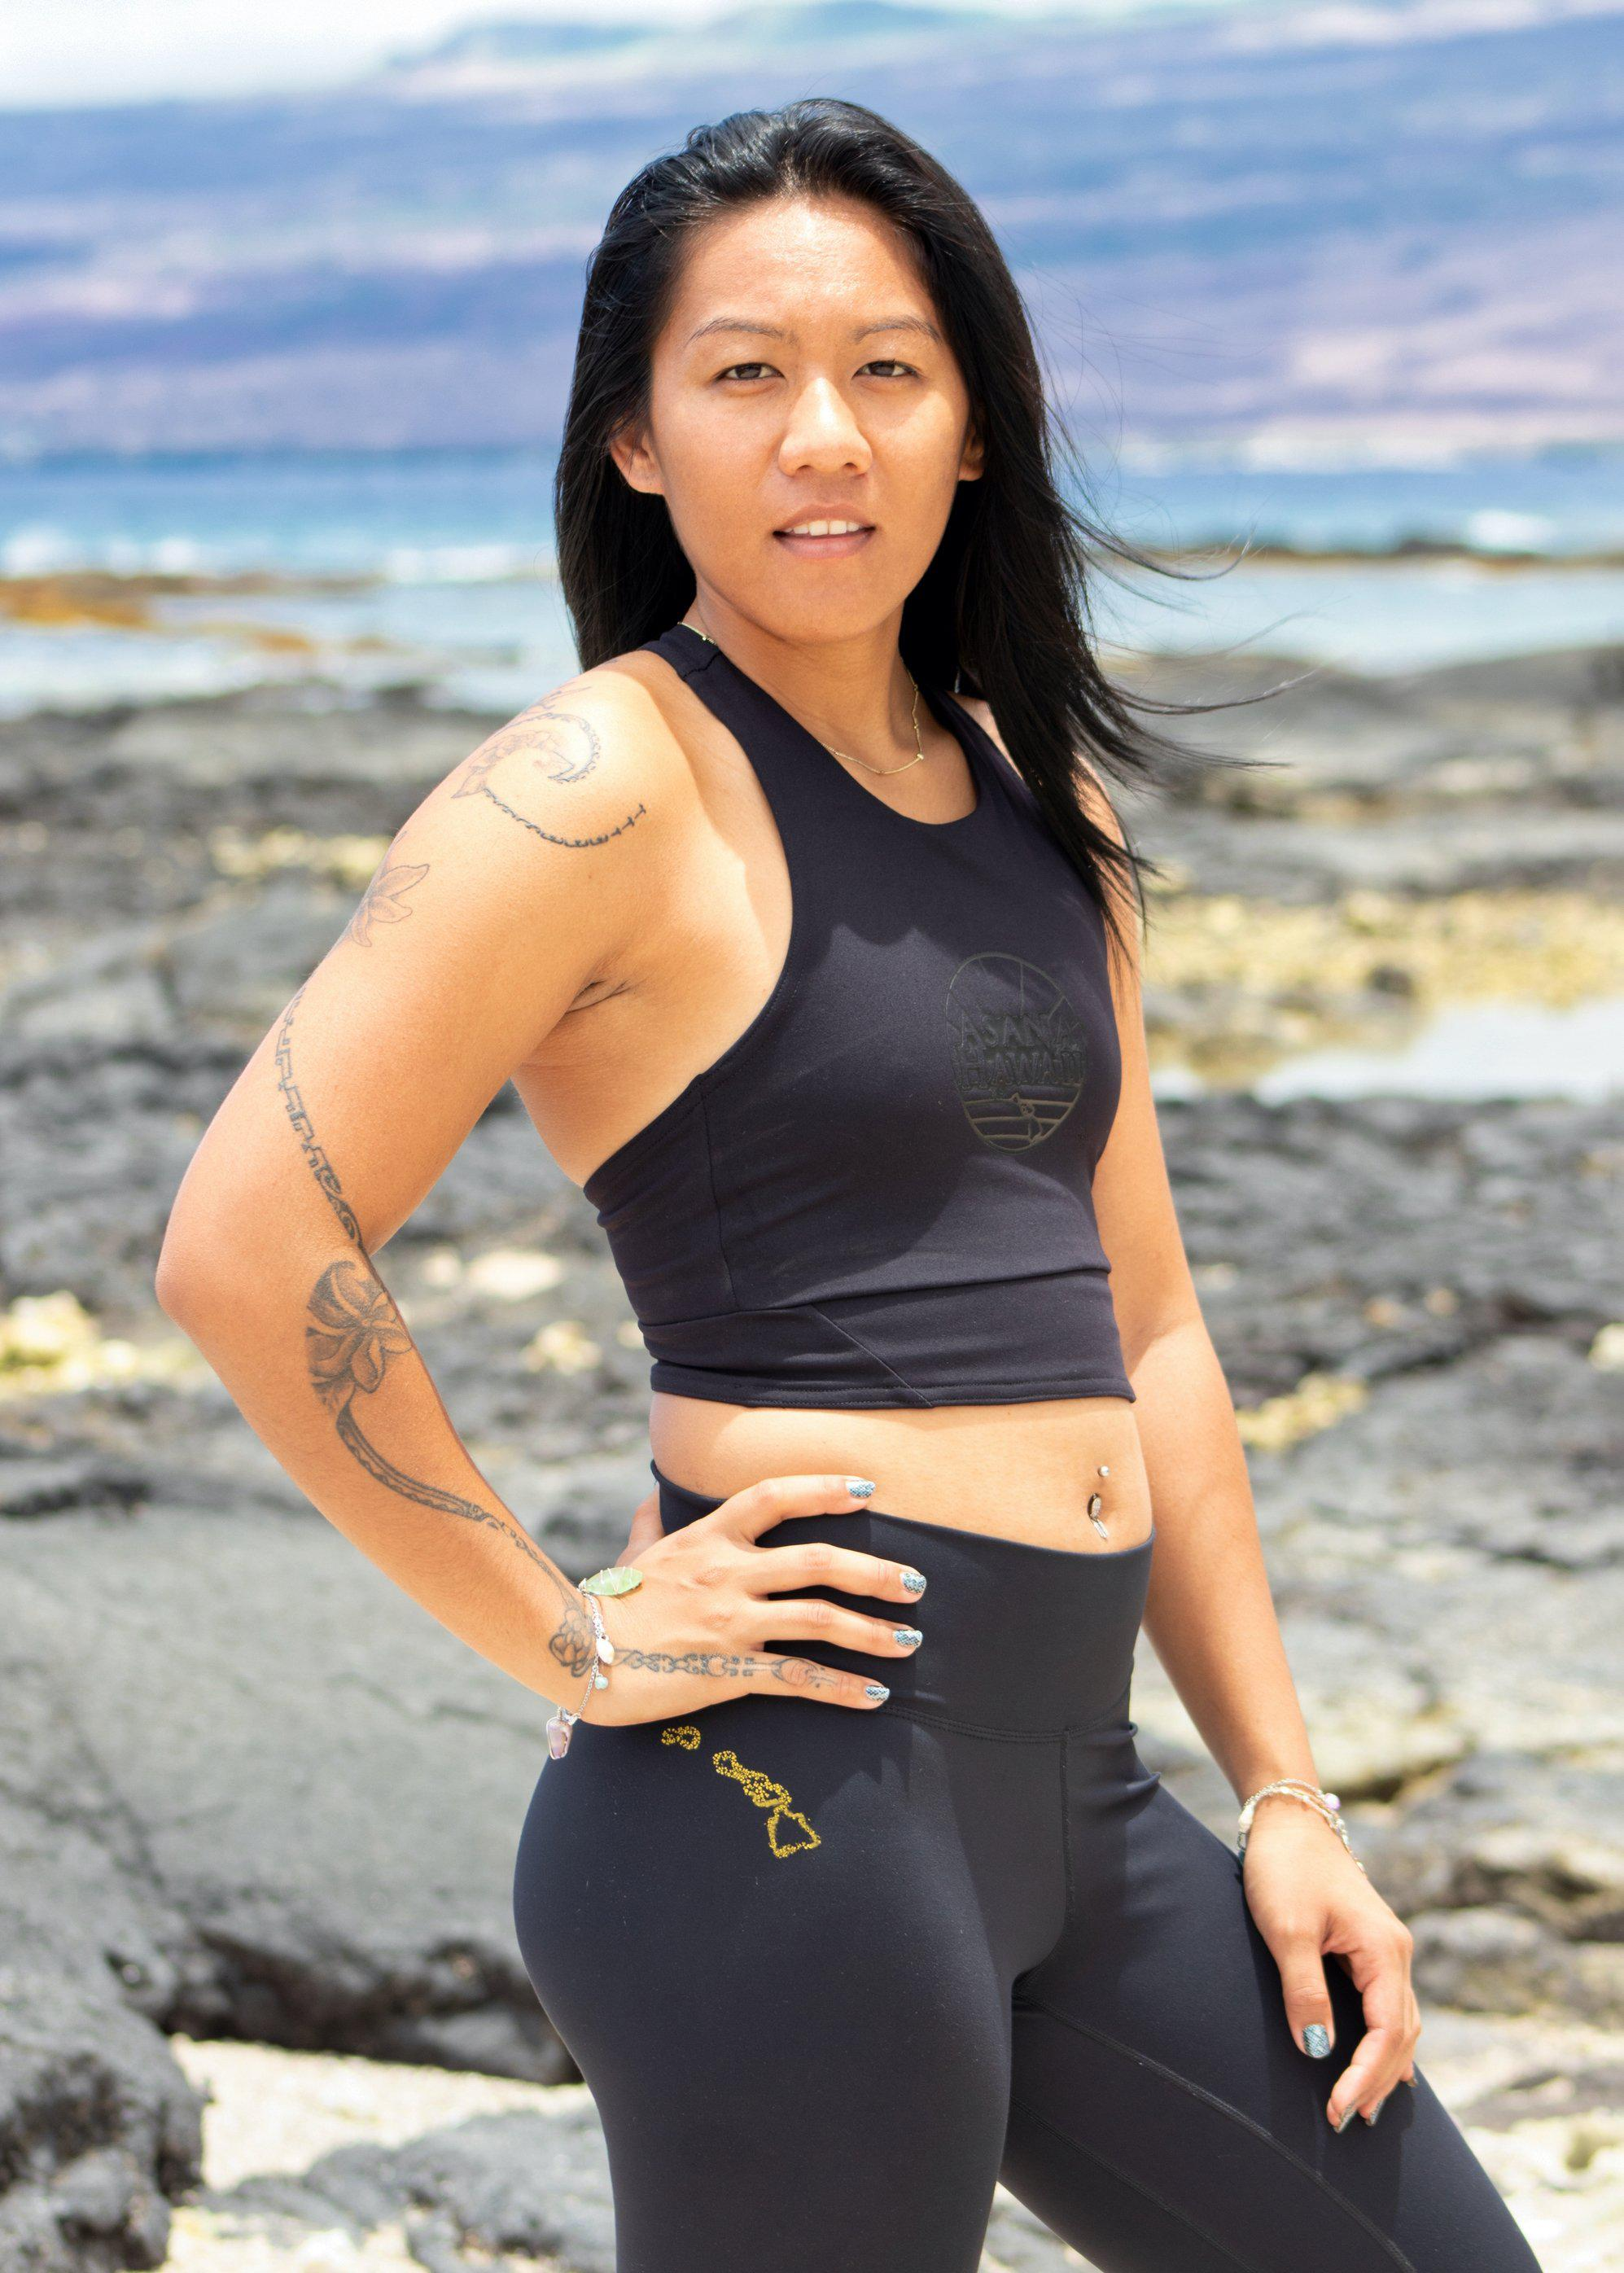 Asana Hawaii Loko Wai Sports Bra